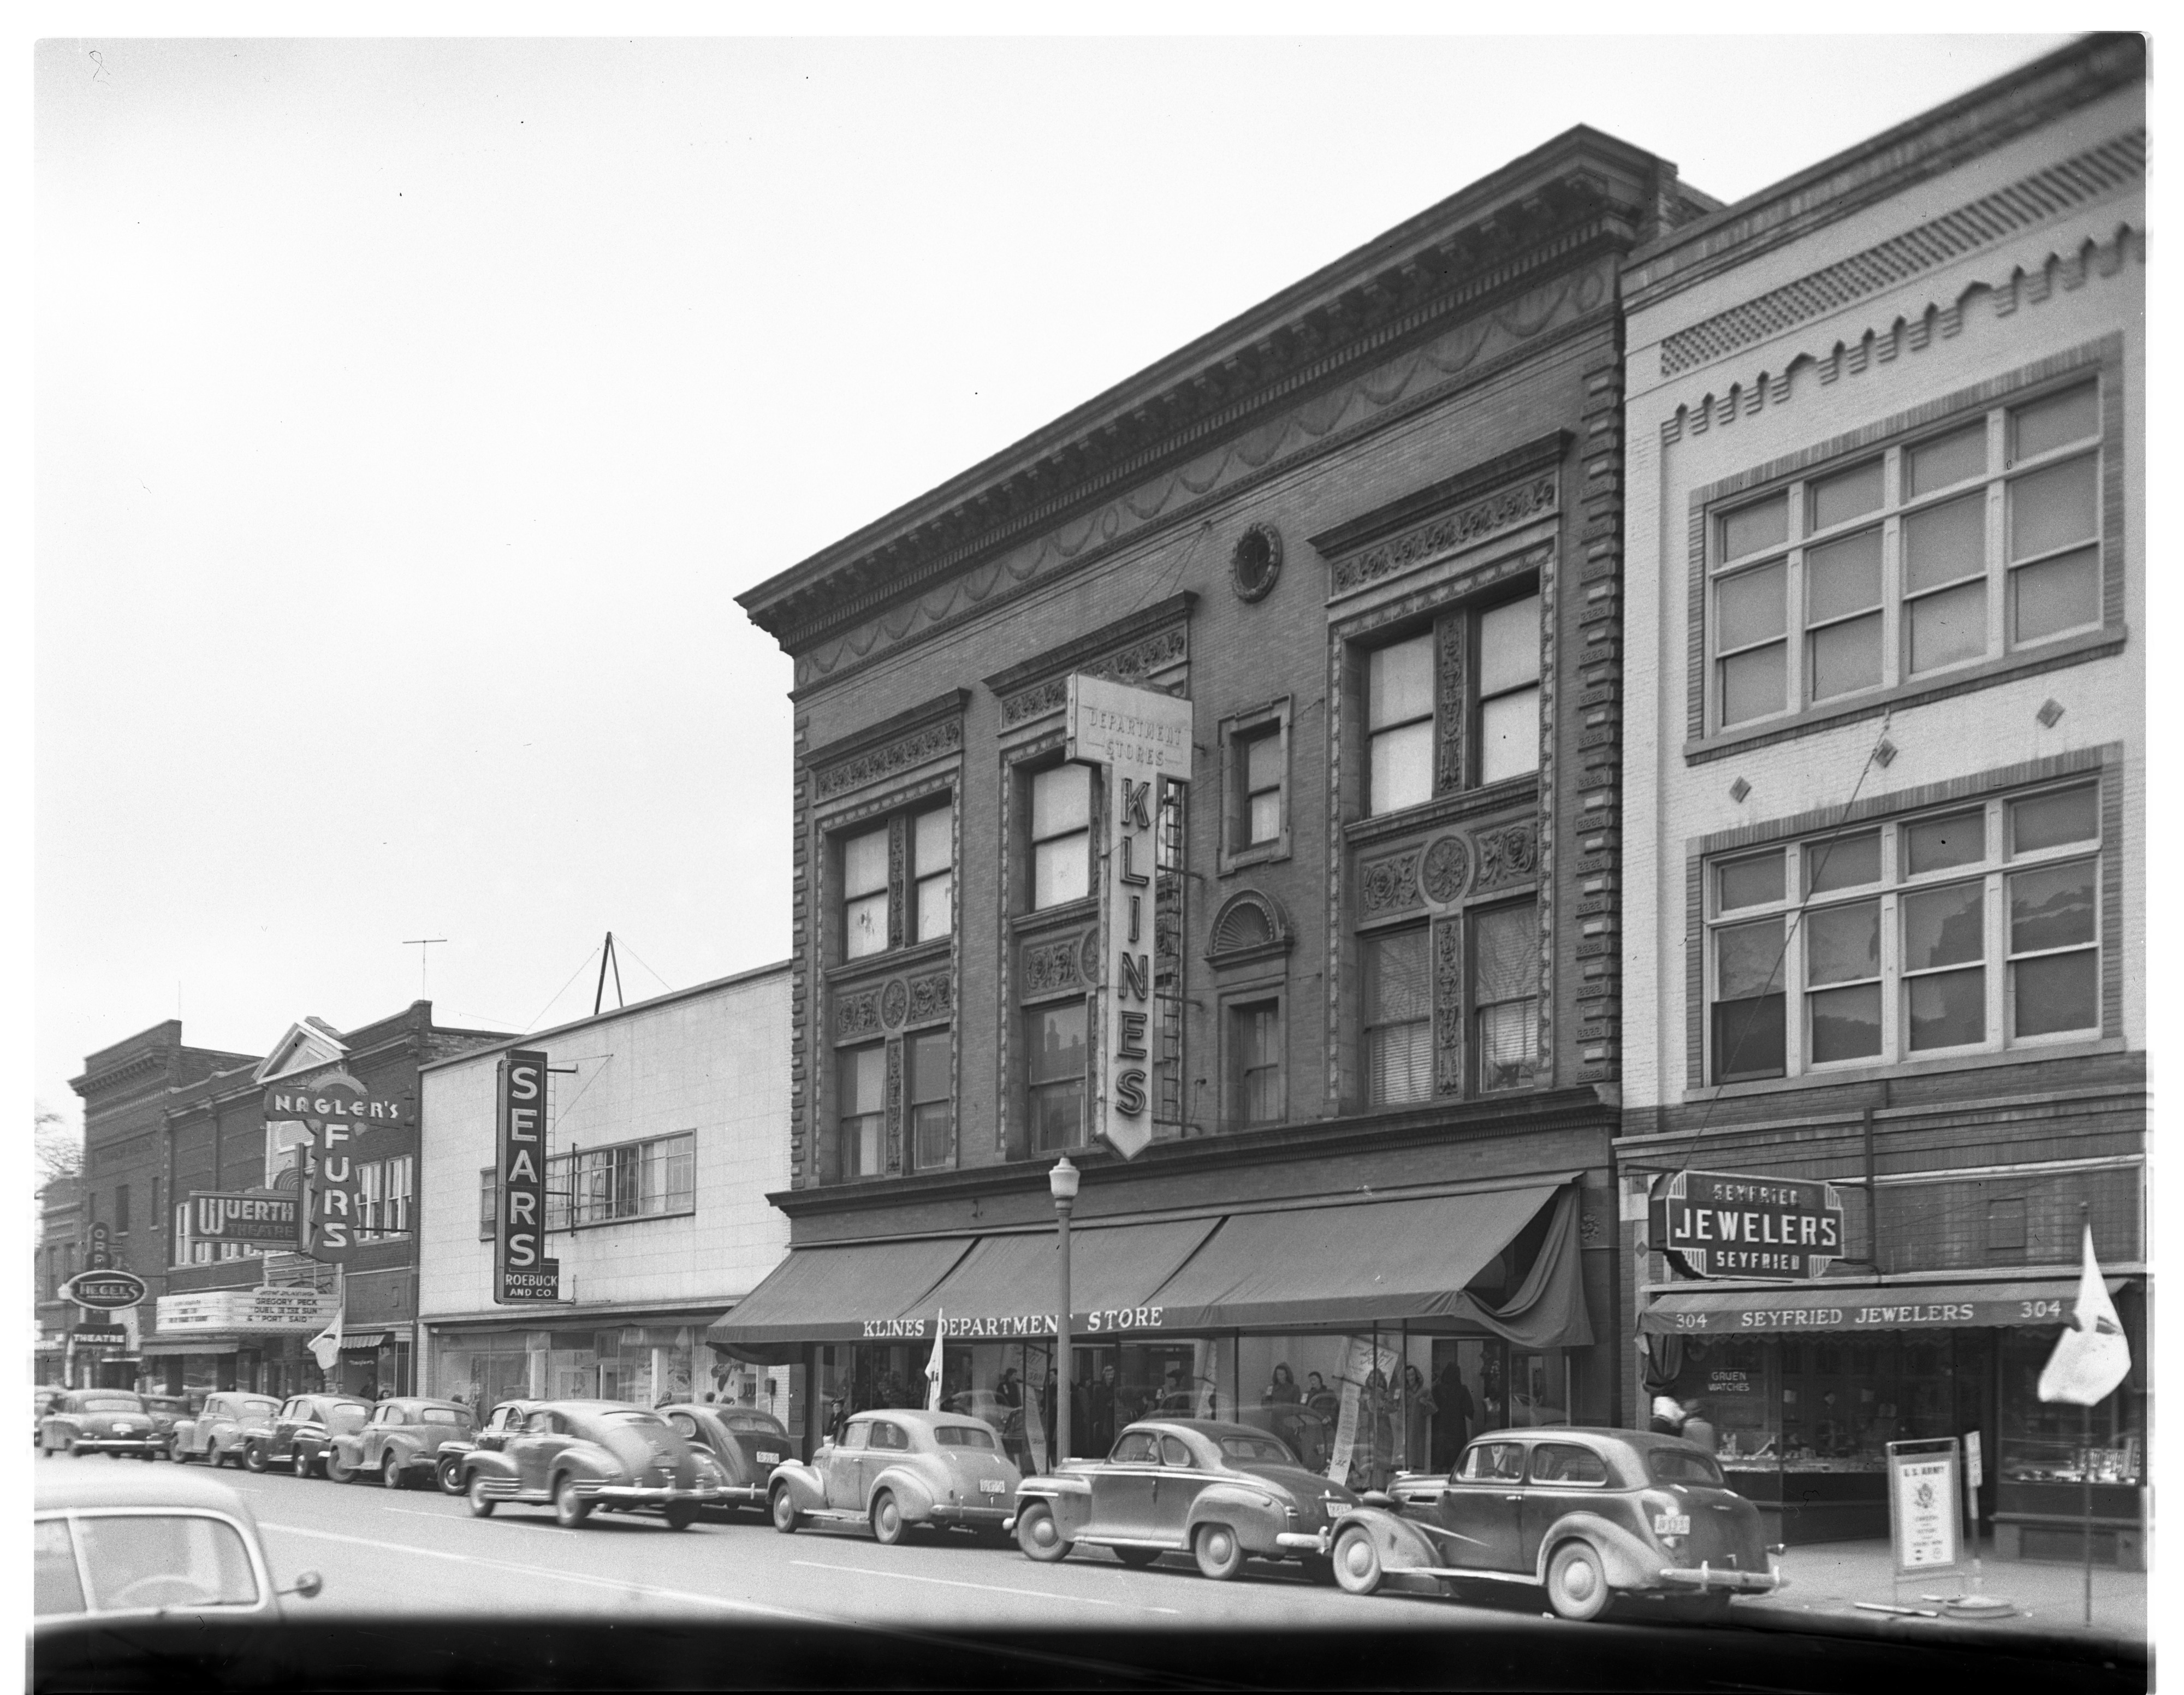 Sears and Kline's, 1949 image